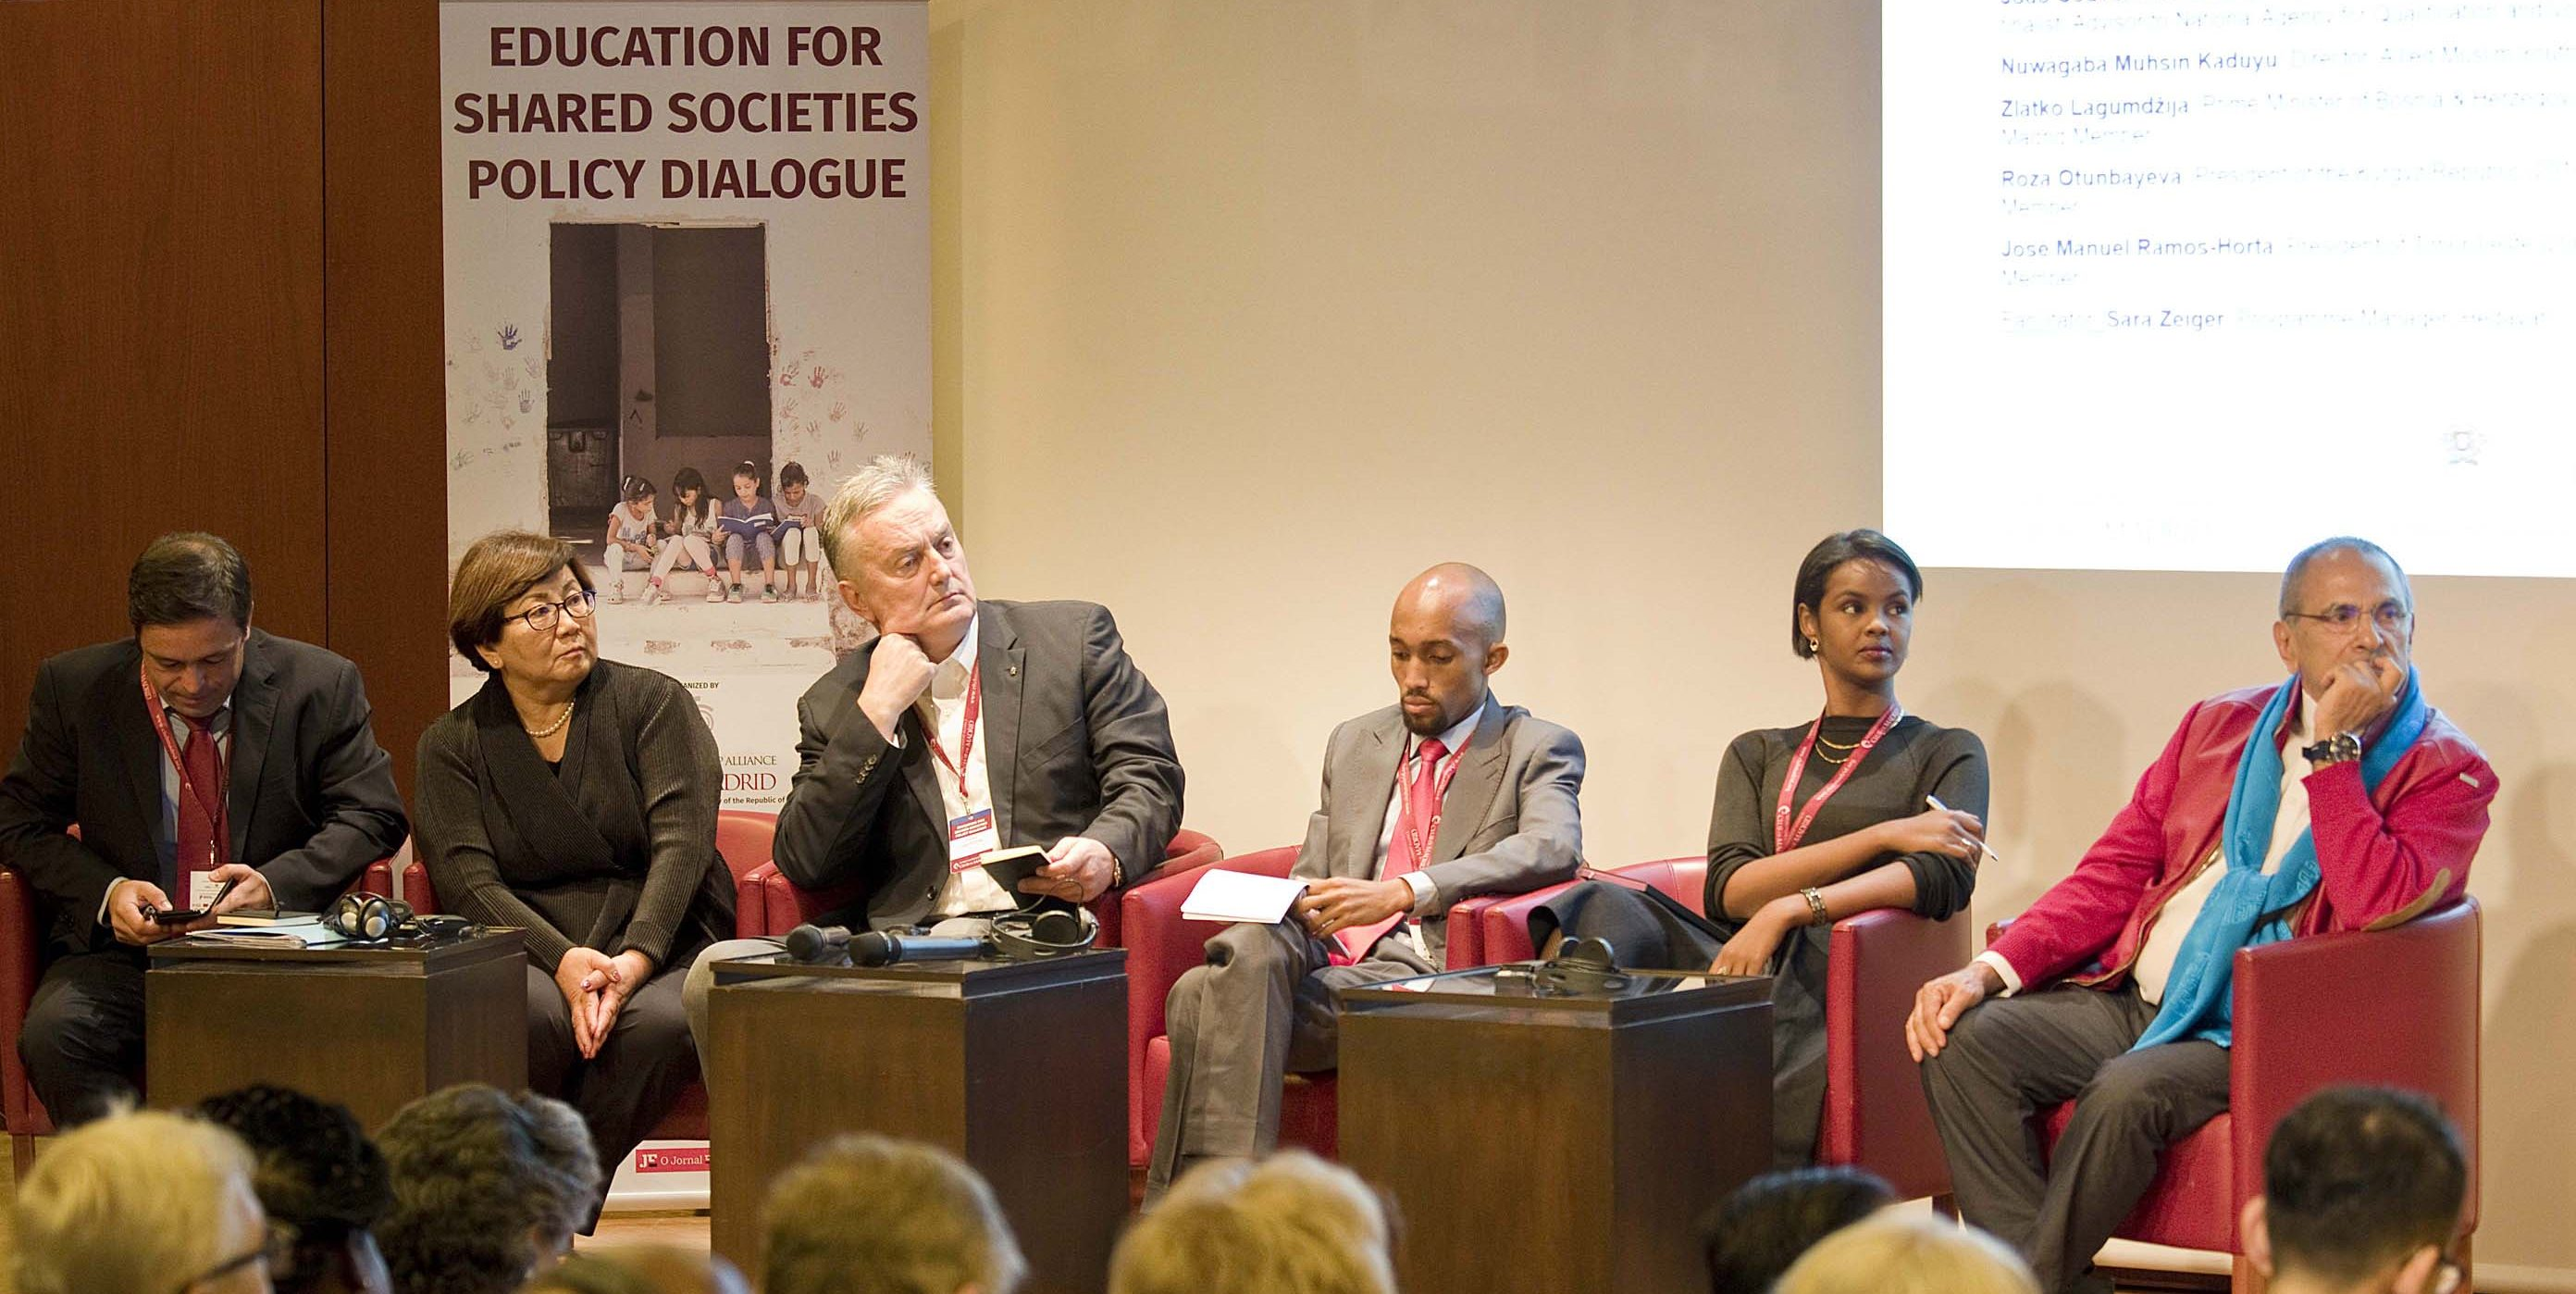 'Education for Shared Societies Policy Dialogue' to produce a global agenda for inclusive education